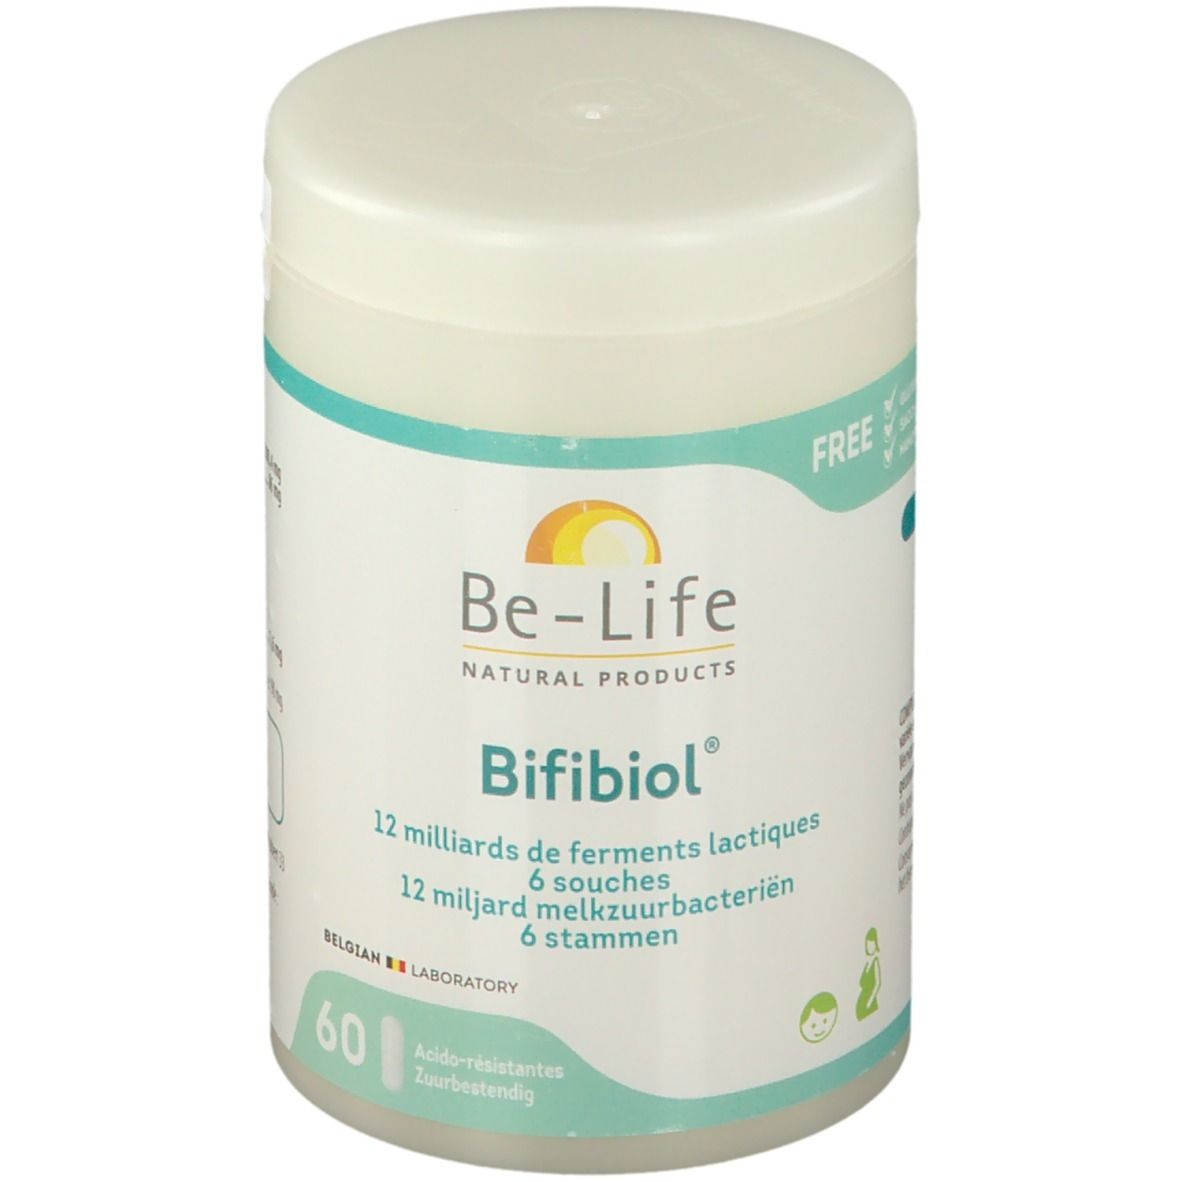 Image of Be-Life Bifibiol®